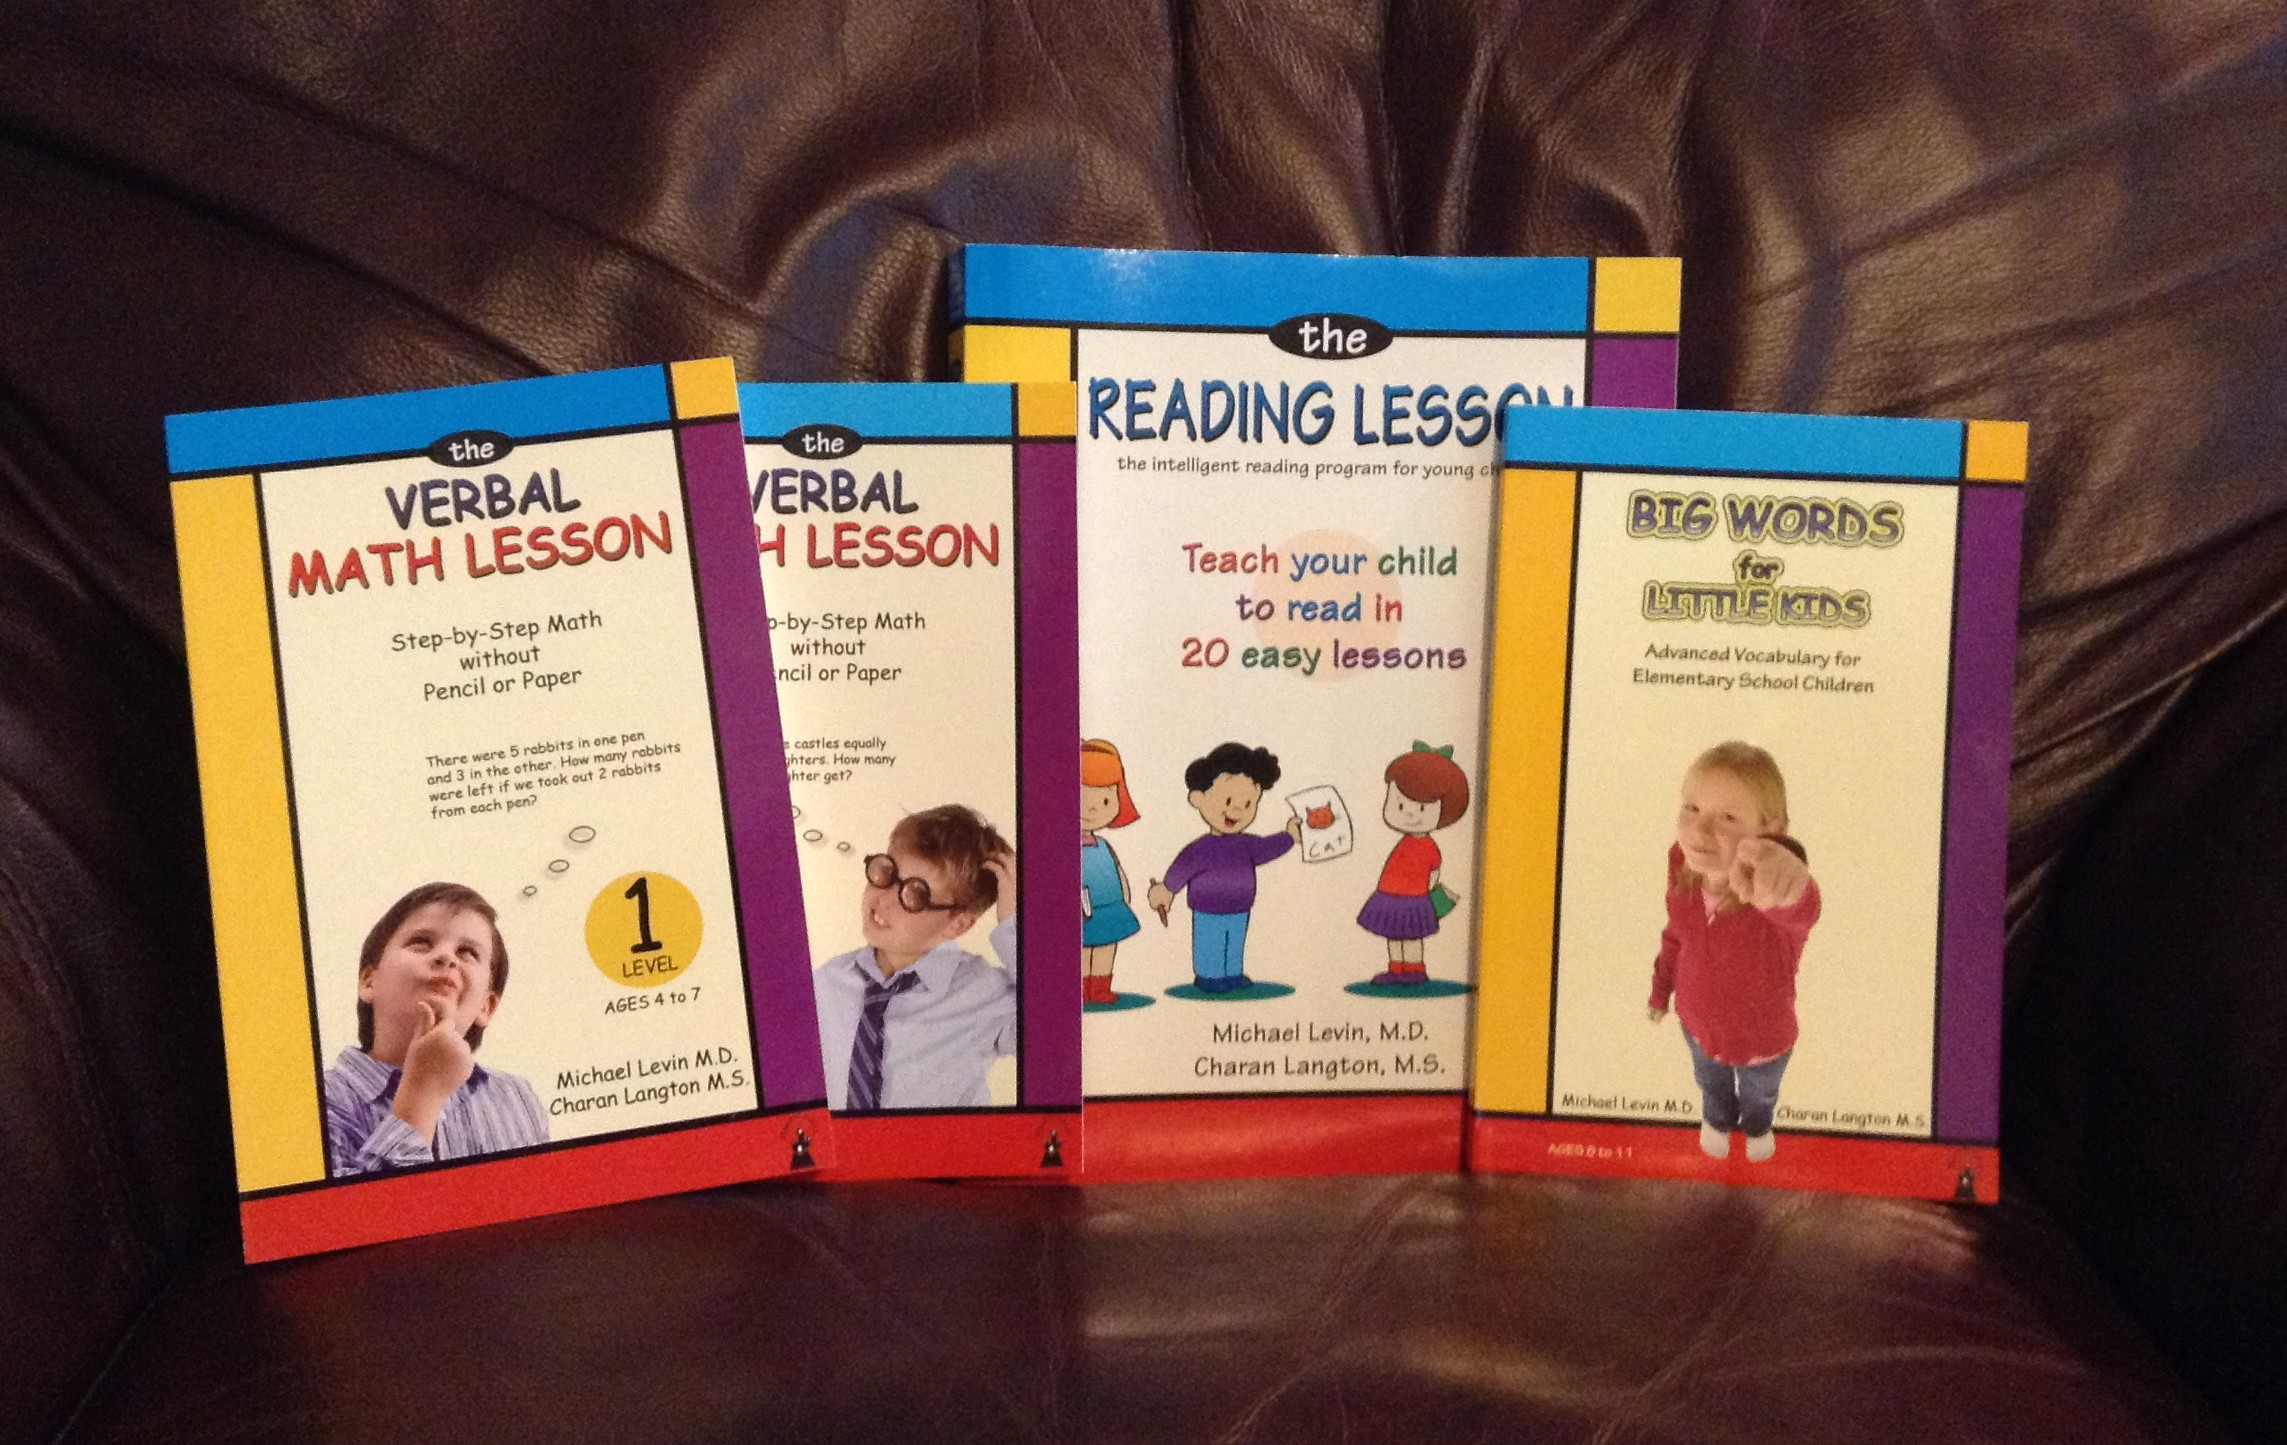 The Reading Lesson The Verbal Math Lesson And Big Words For Little Kids Review